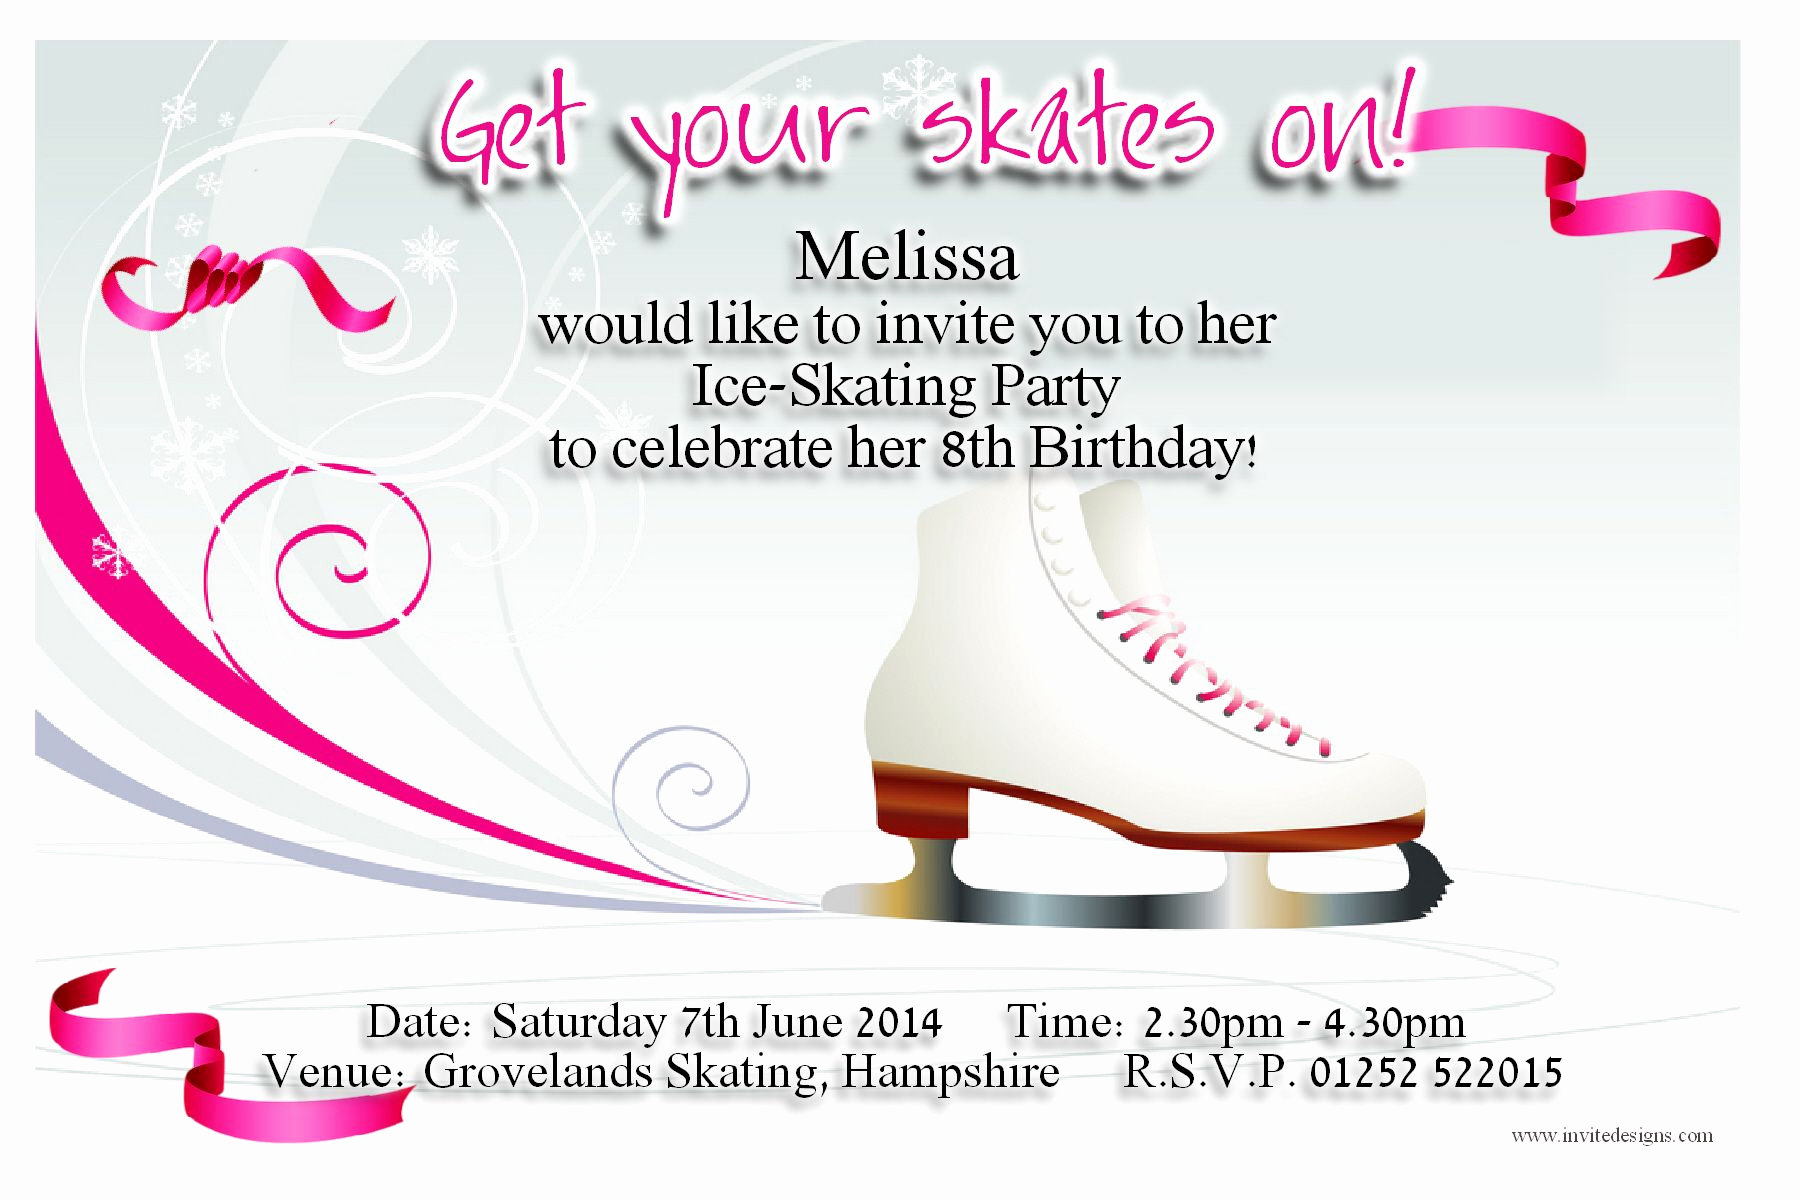 Skate Party Invitation Wording Inspirational Ice Skating Birthday Party Invitations